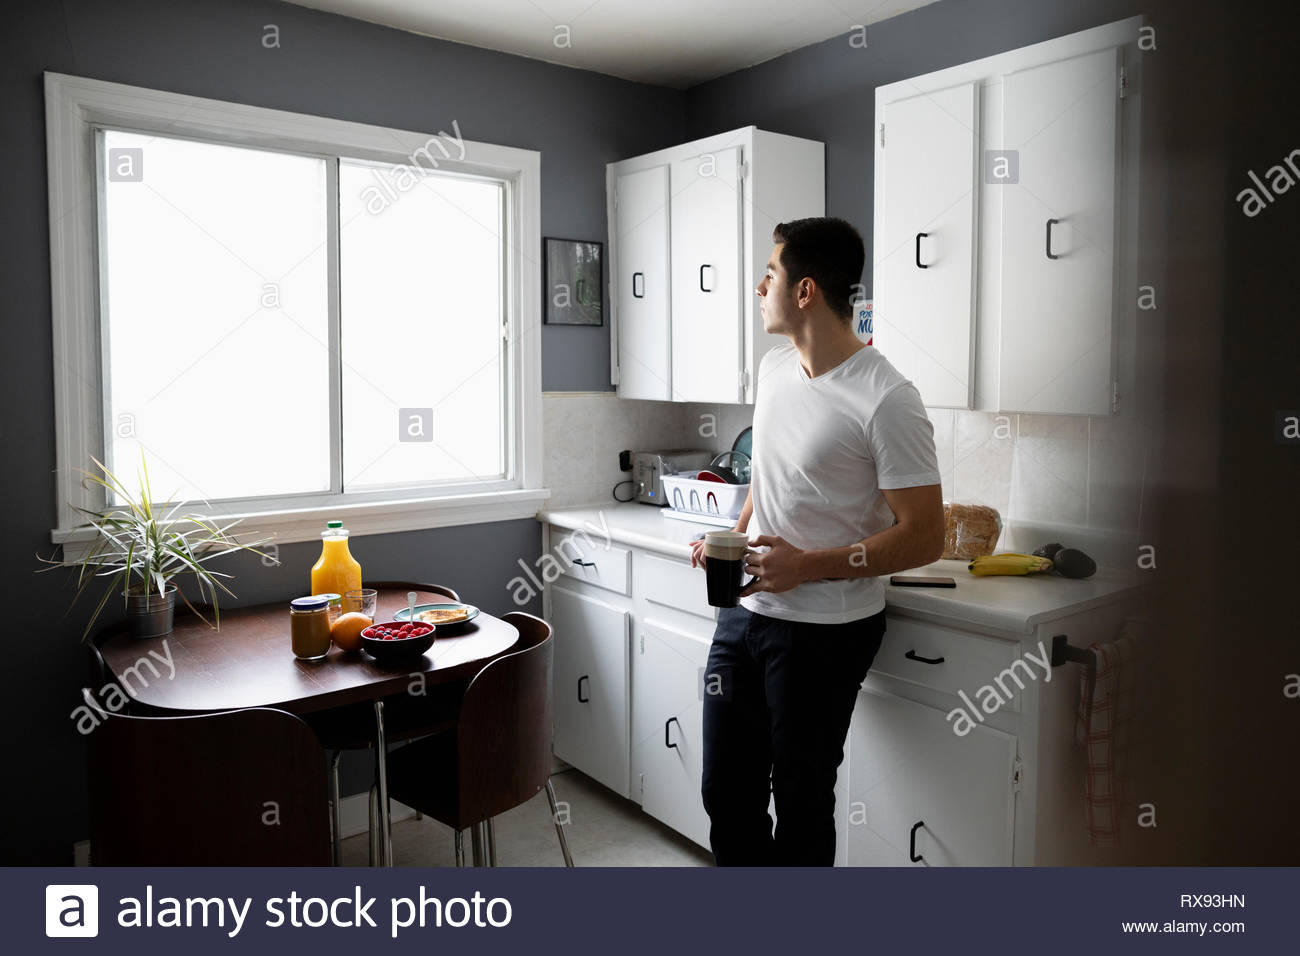 Thoughtful young Latinx man drinking coffee in morning kitchen - Stock Image